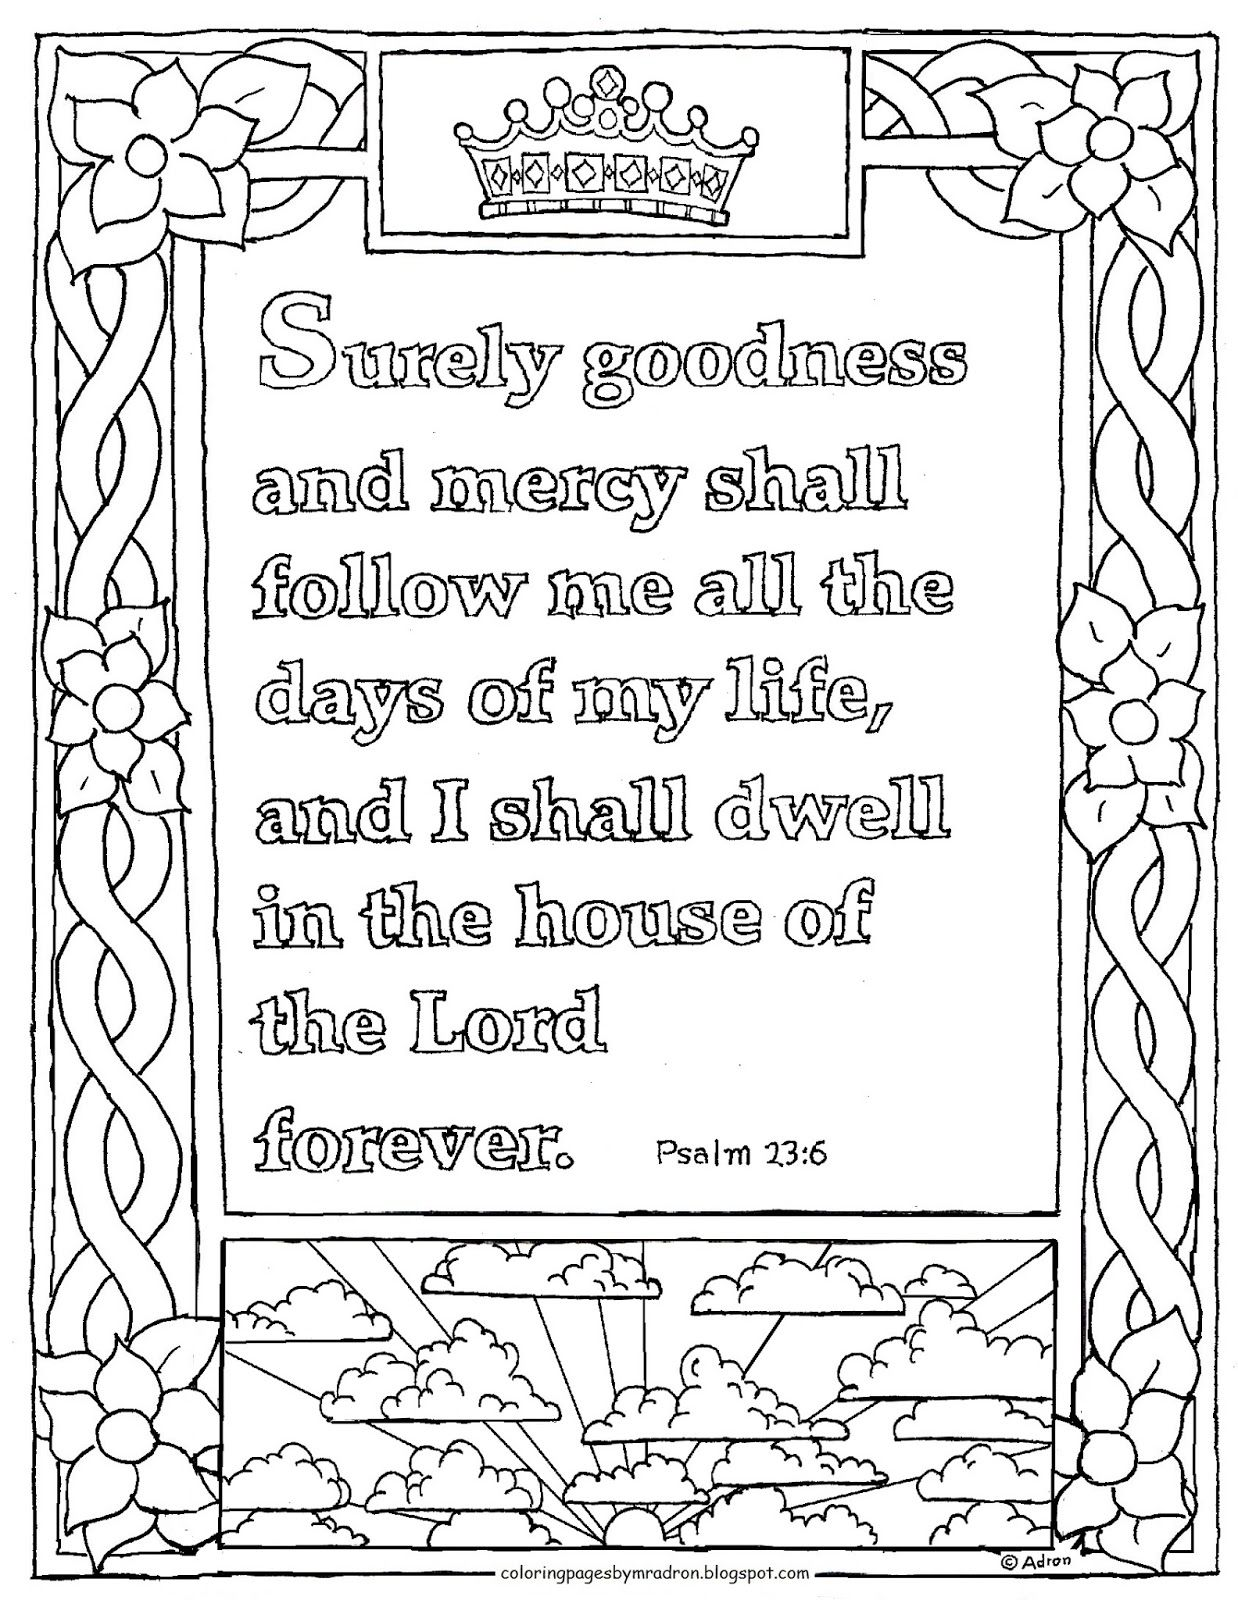 Printable Psalm 23 6 Coloring Page Goodness And Mercy